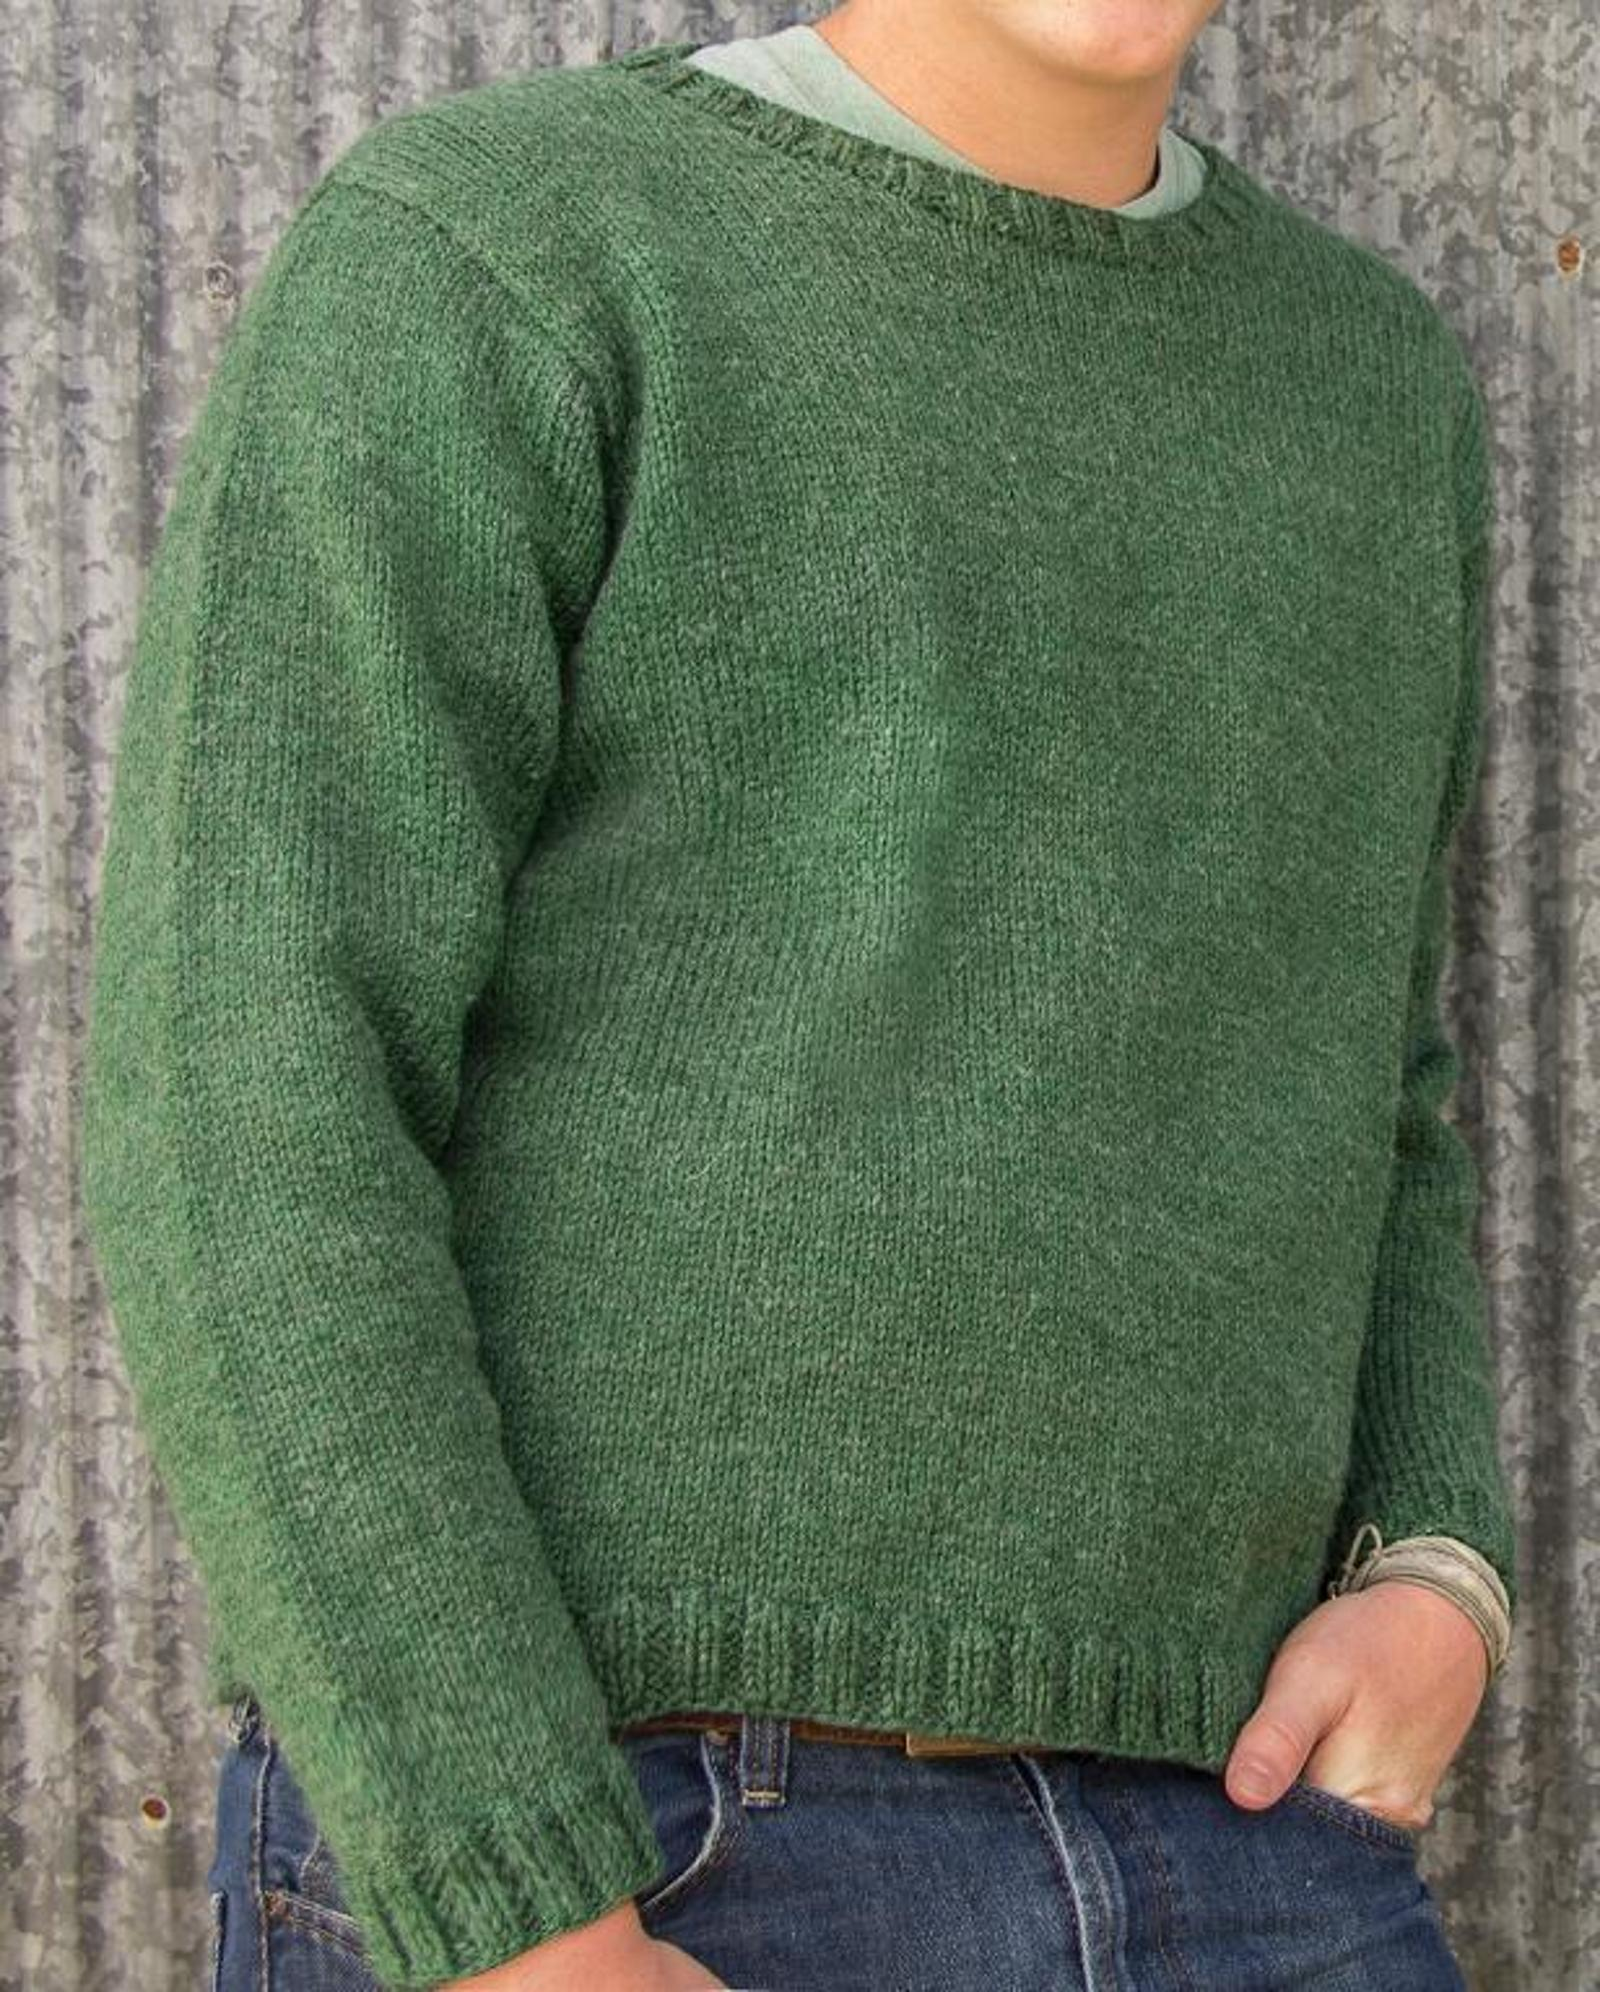 Glasgow Top Down Pullover Knitting Pattern